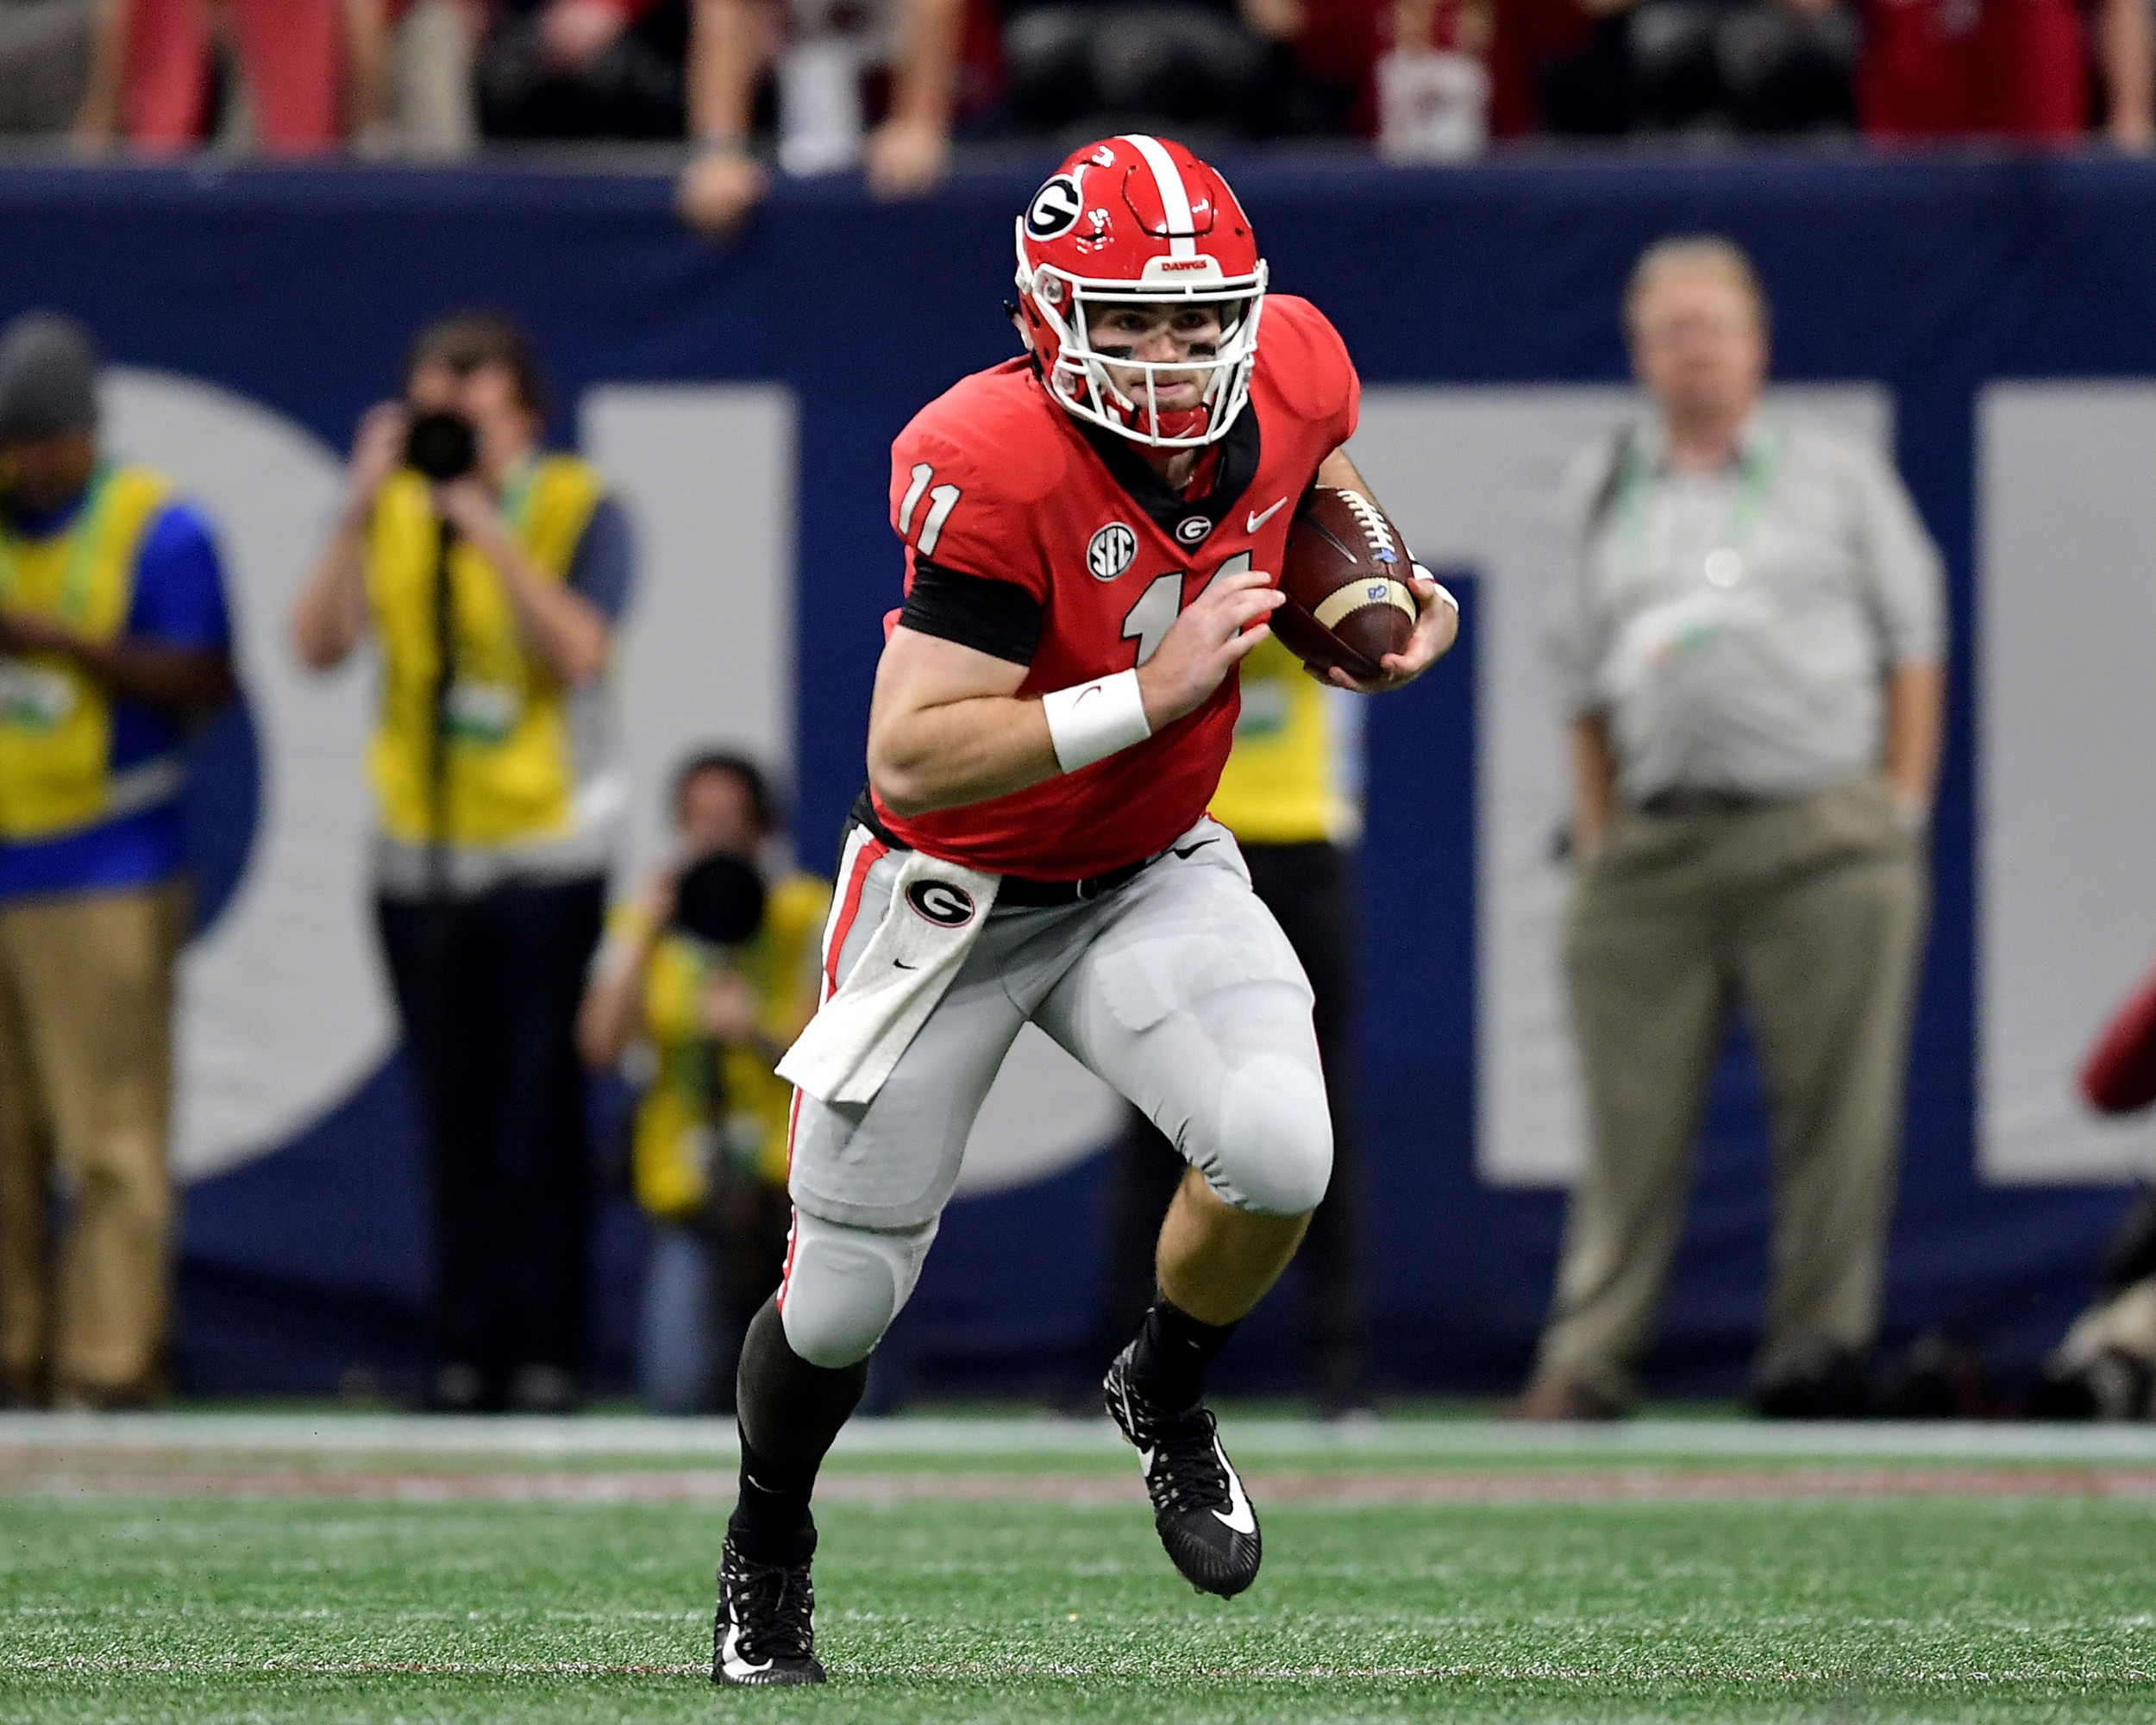 Georgia Bulldogs quarterback Jake Fromm (11) with a keeper during the second half of the 2018 SEC Championship football game against the Alabama Crimson Tide, at Mercedes-Benz Stadium in Atlanta, Ga., on Dec. 1, 2018. Alabama wins 35-28. (Photo by Lee Walls)